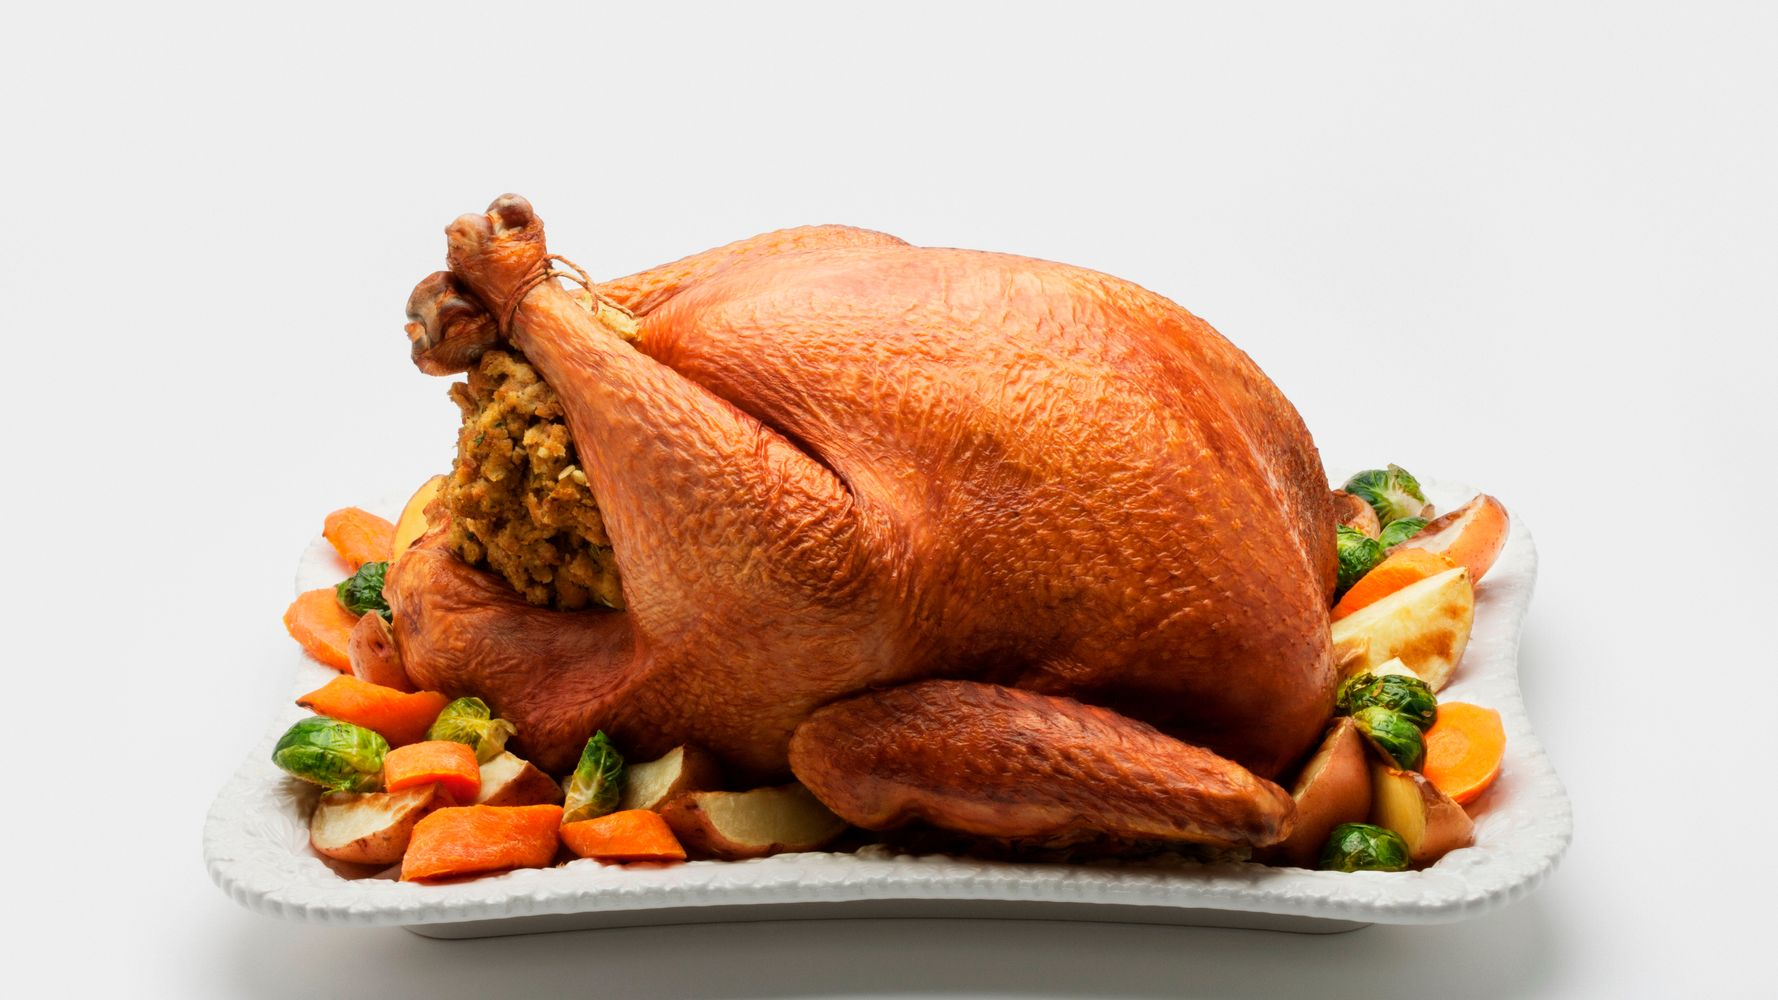 How To Stuff A Turkey Safely: The Experts Explain